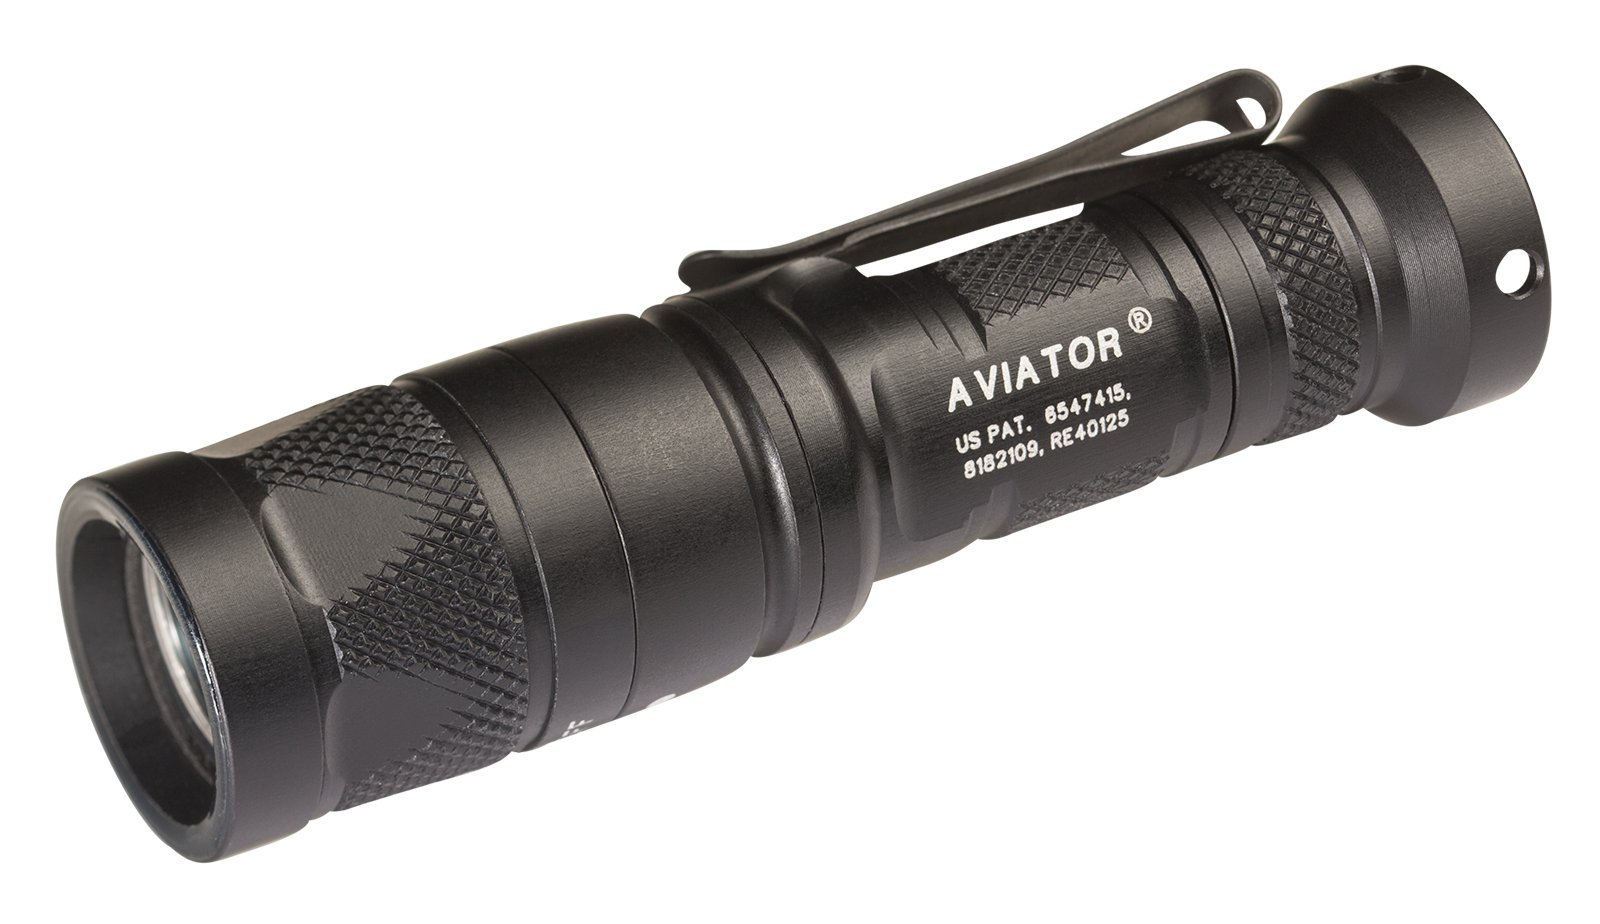 SureFire Aviator Flashlights with Dual Output Multi-Spectrum LED